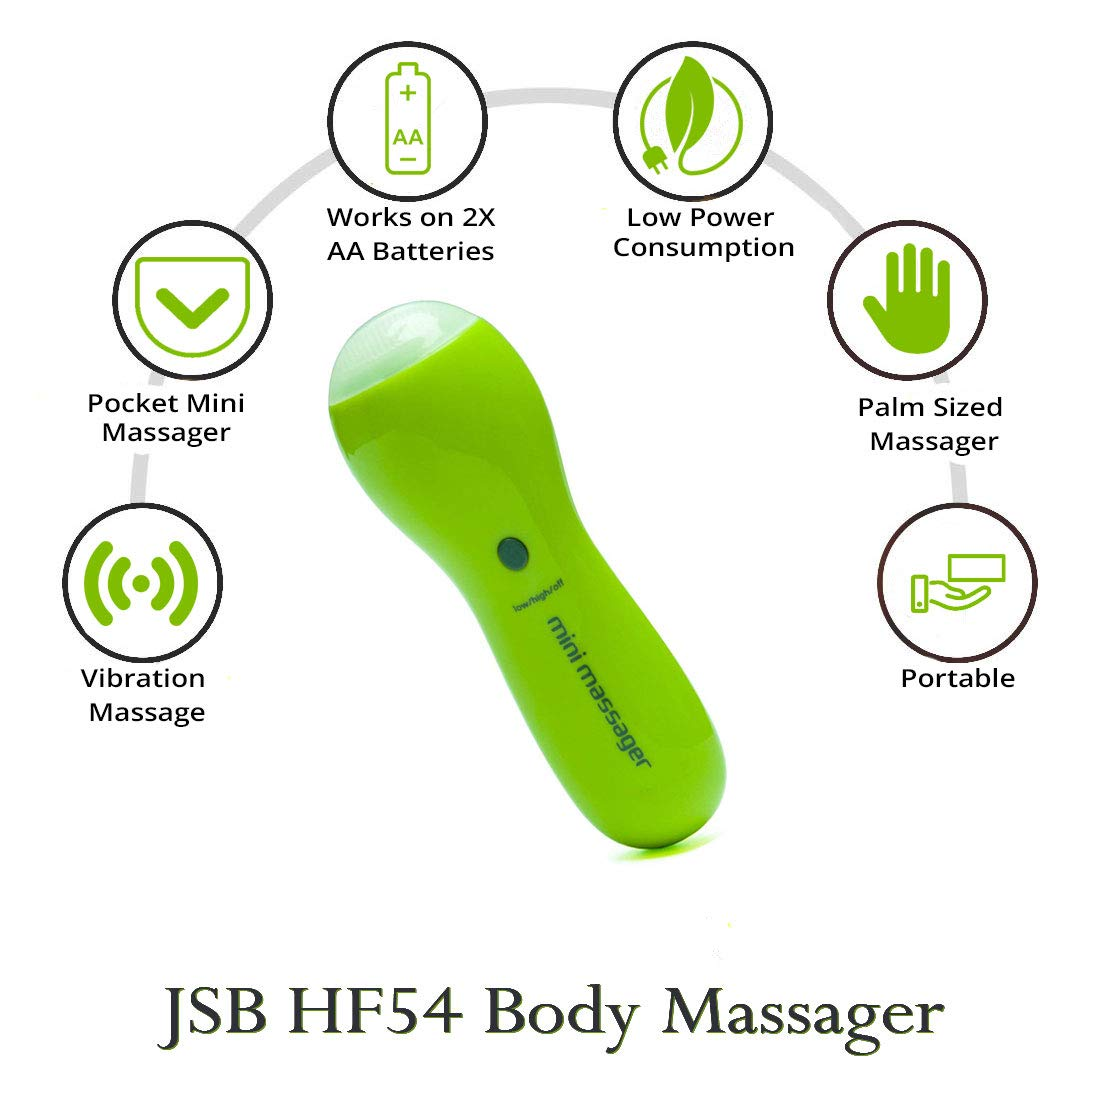 JSB HF54 Pocket Body Massager for Pain Relief and Muscle Relaxation